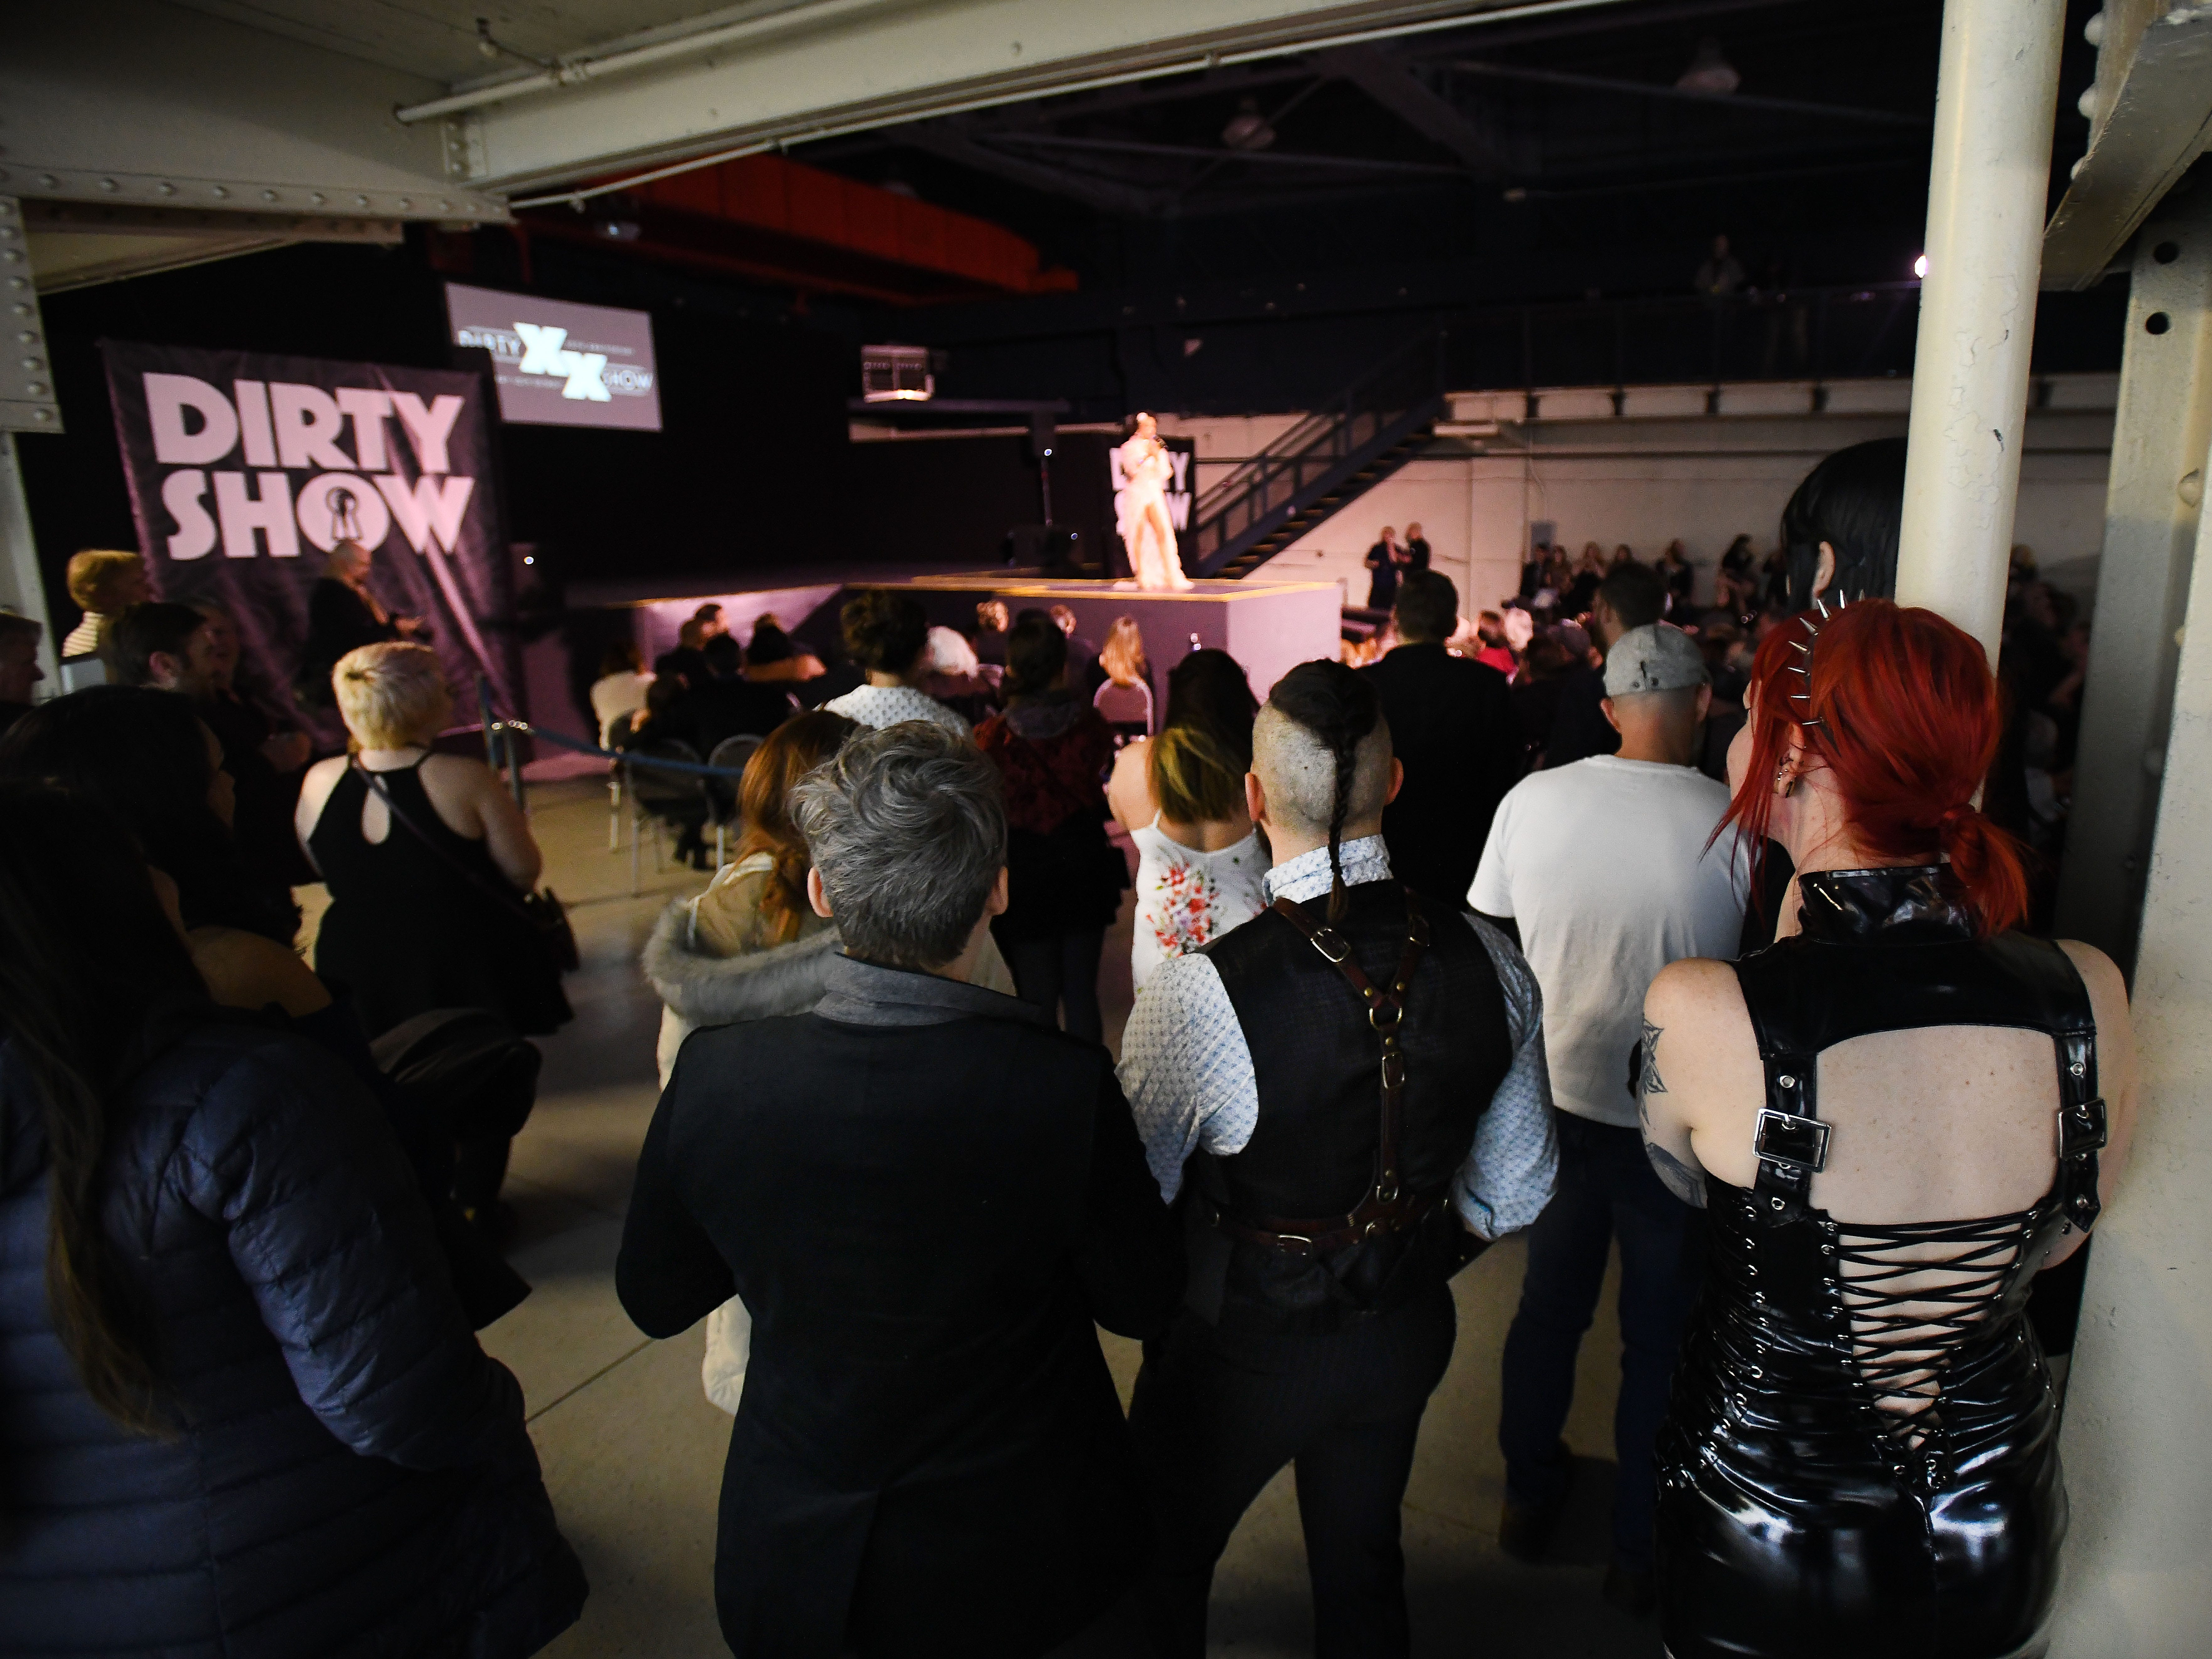 A crowd gathers for The 20th anniversary of the 'The Dirty Show', an erotic art and stage show at the Russell Industrial Complex in Detroit, Michigan on February 8, 2019.